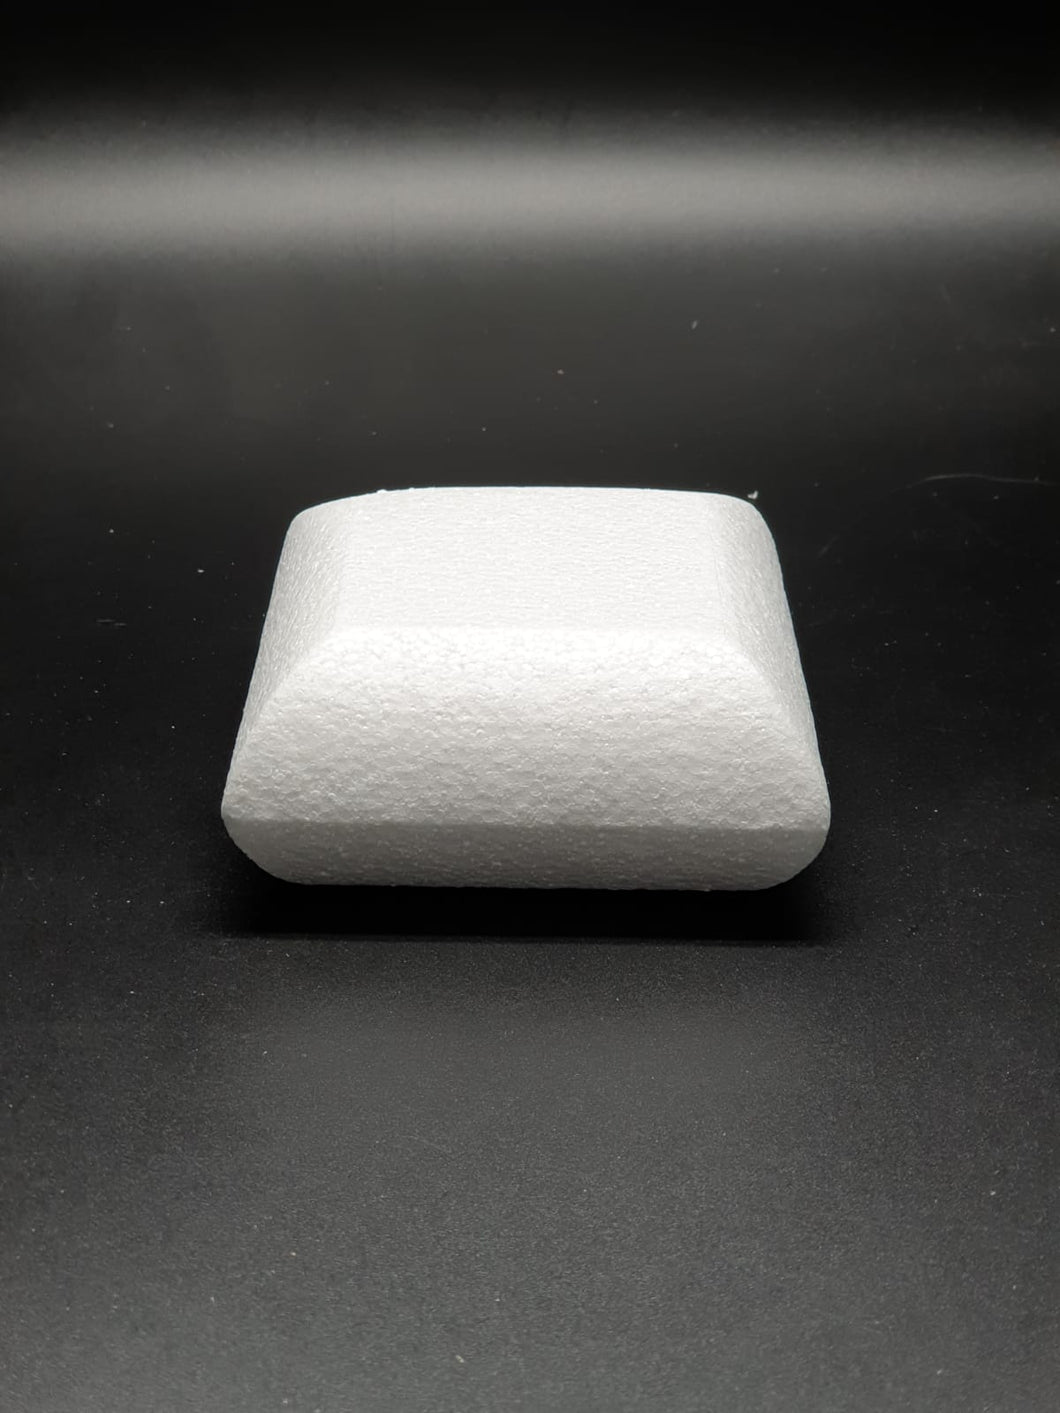 Copy of POLYSTYRENE SQUARE DUMMY CAKE